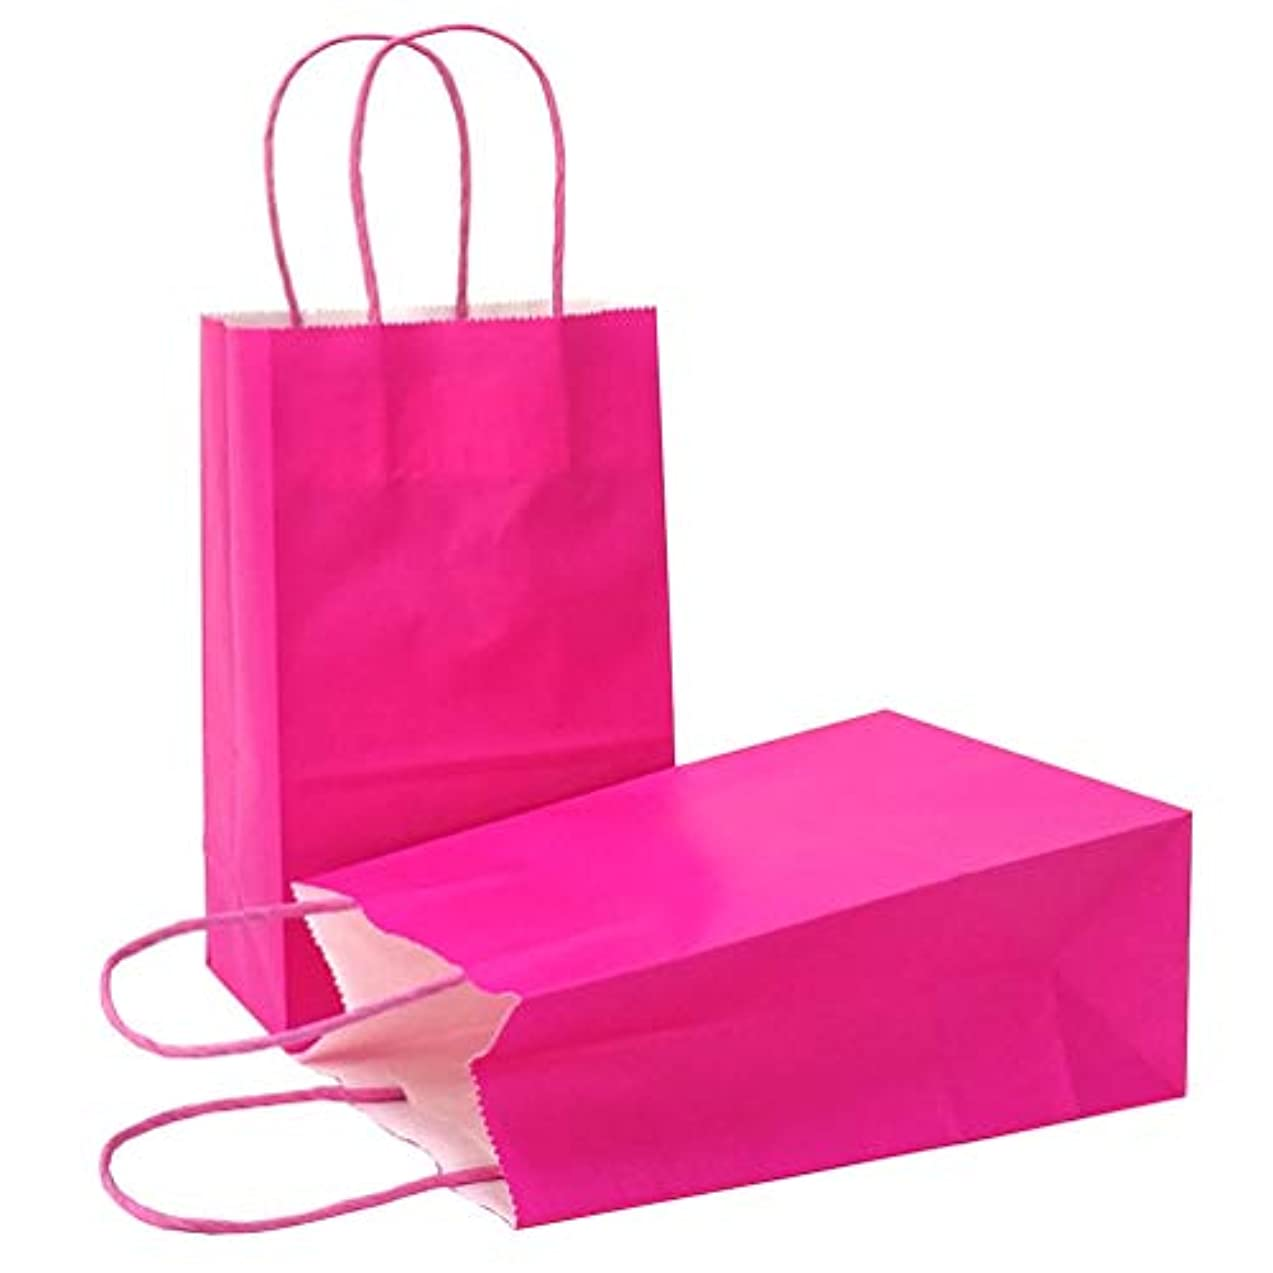 AZOWA Gift Bags Large Kraft Paper Bags with Handles (9.8 x 7.5 x 3.9 in, Magenta, 25 Pcs)